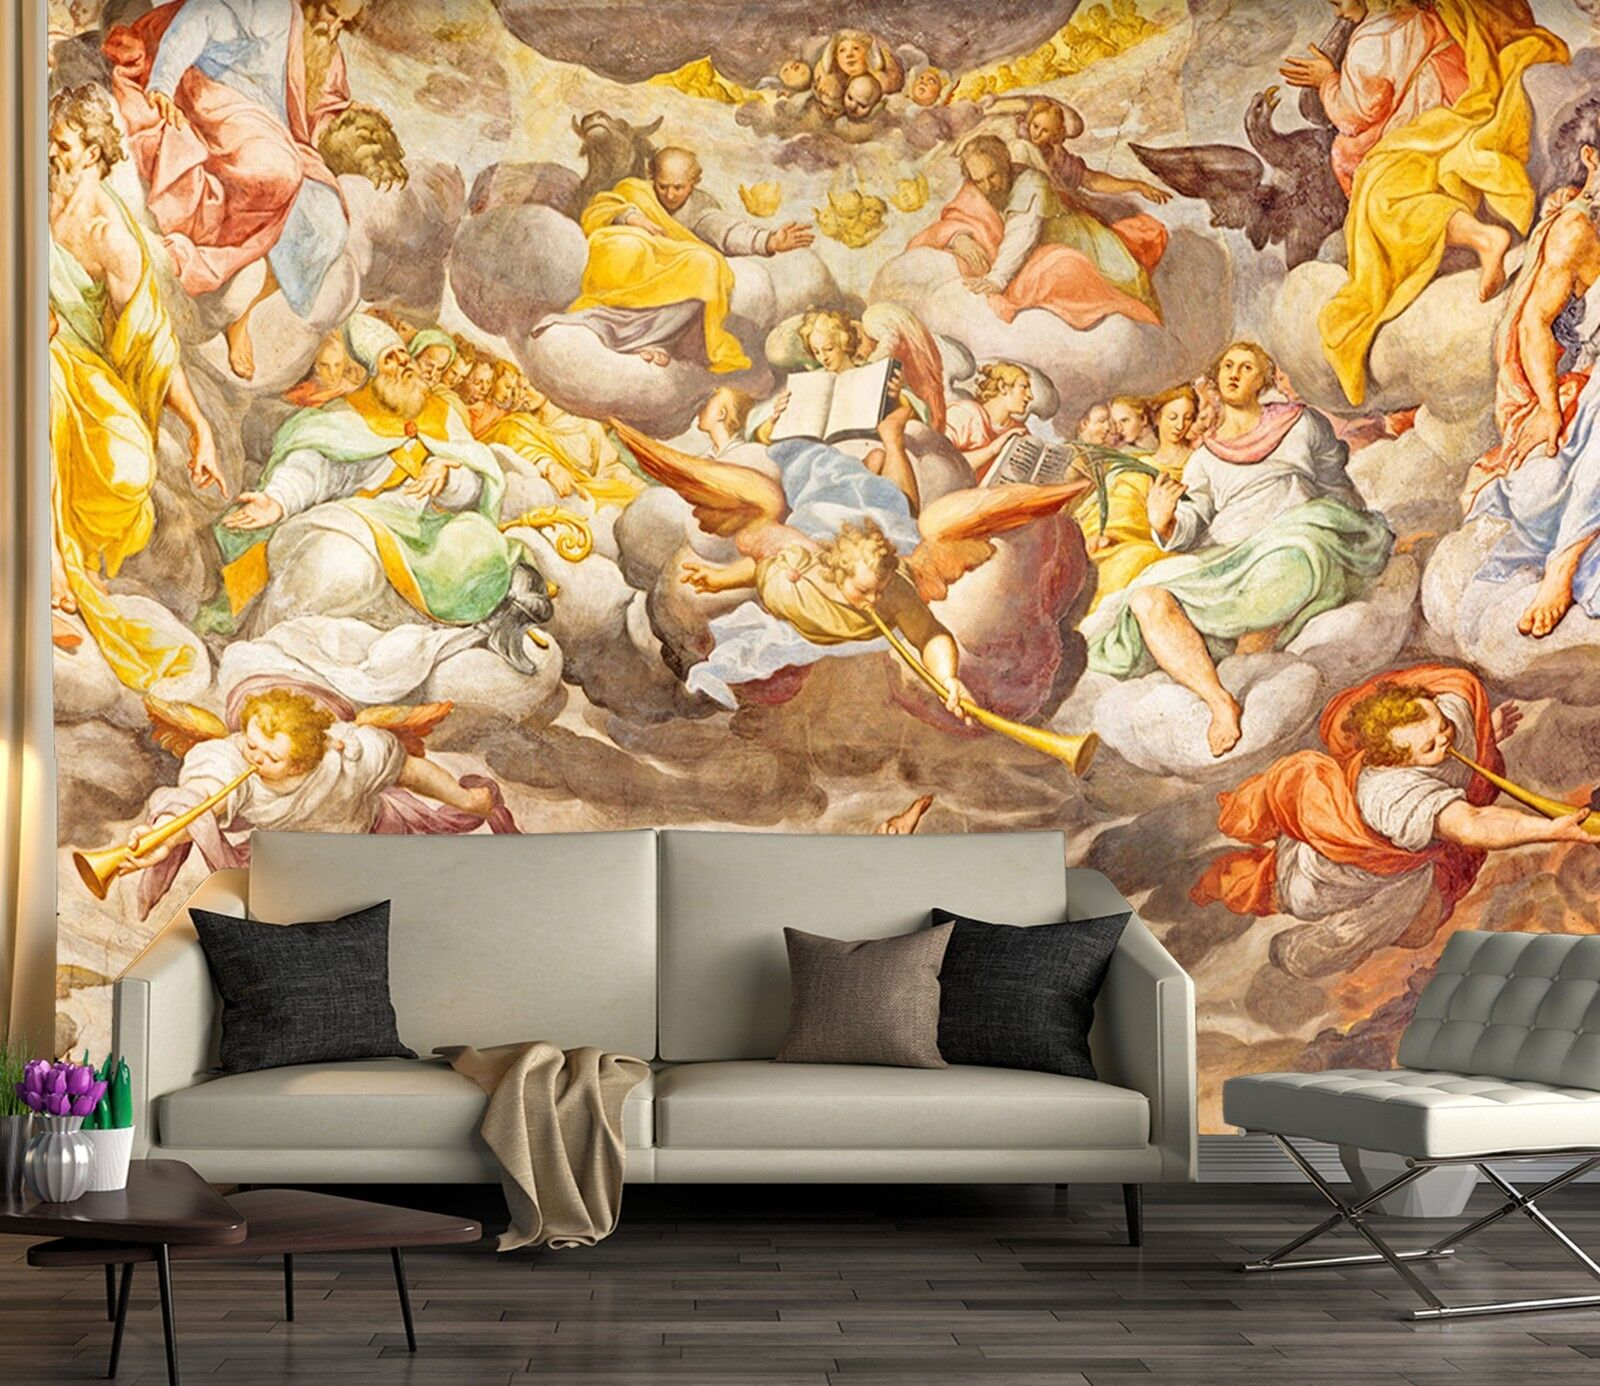 3D Angel Oil Painting 56 Wall Paper wall Print Decal Wall Deco Indoor wall Mural